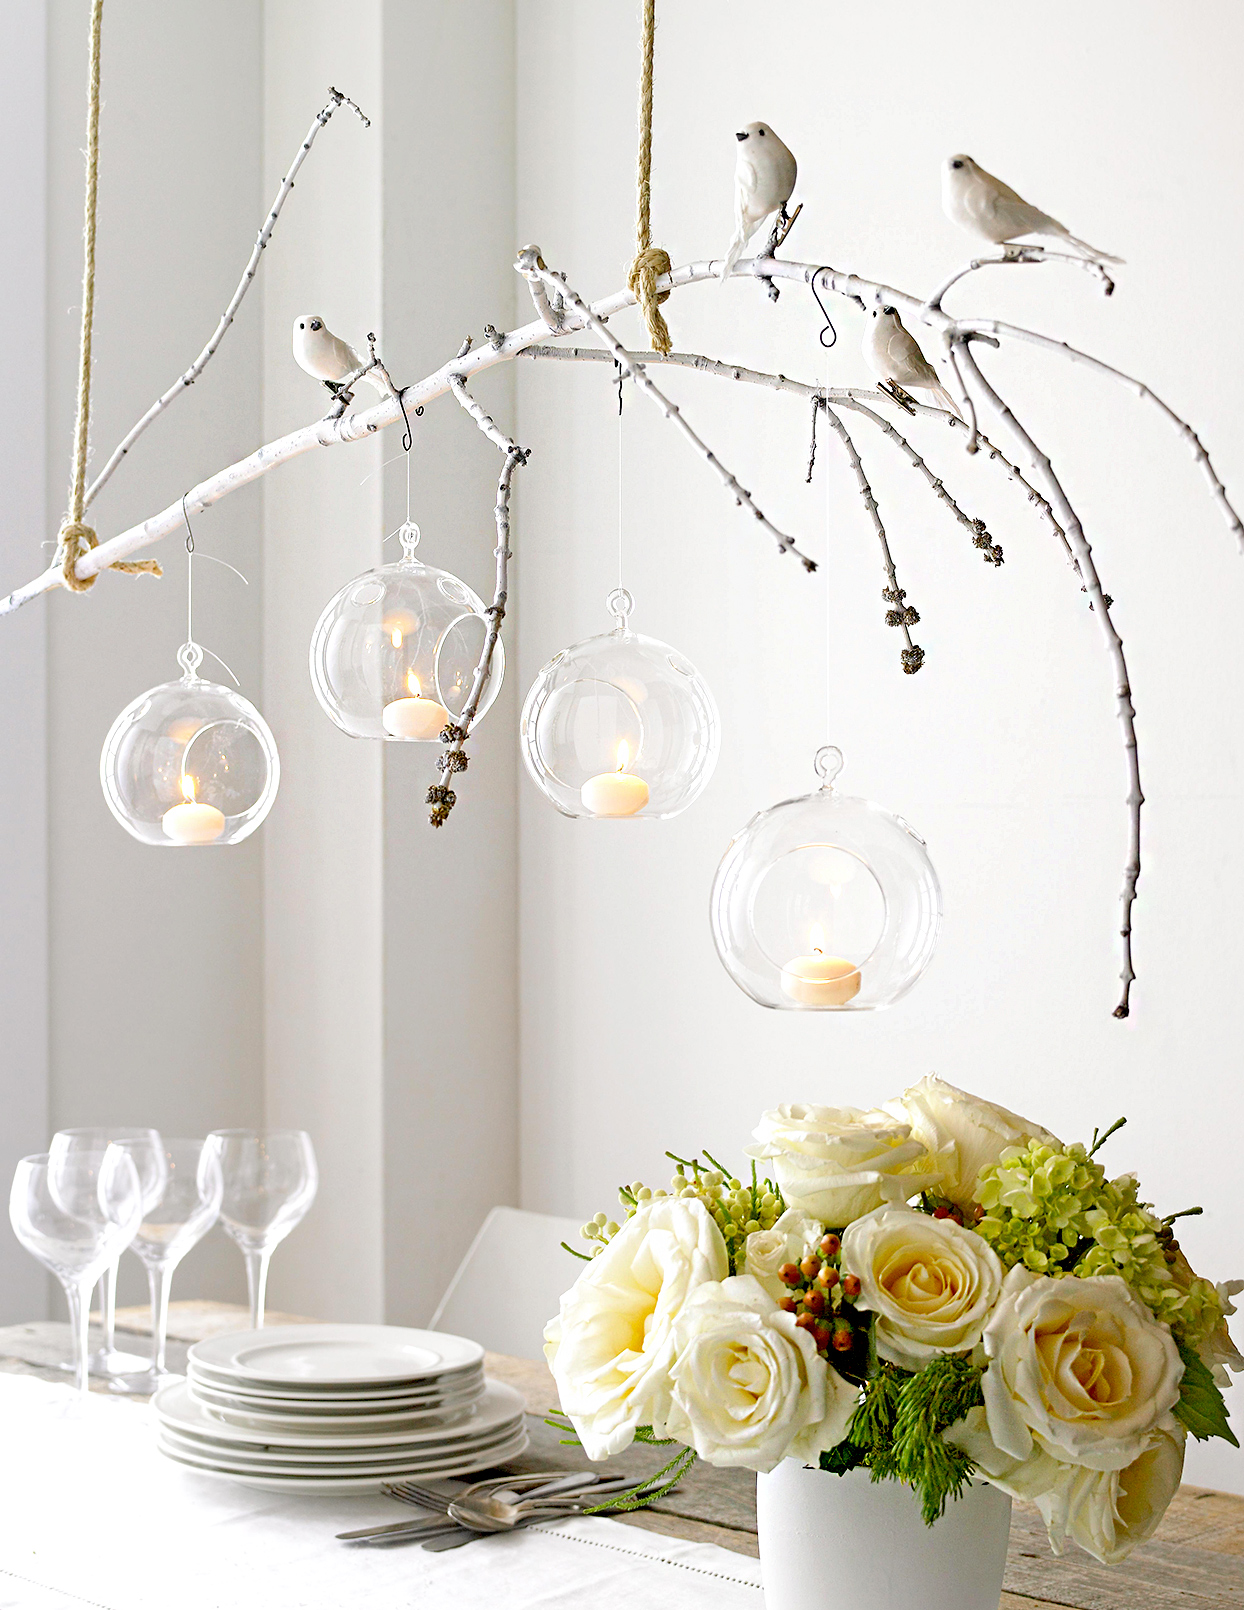 Branch with birds and glass with candles